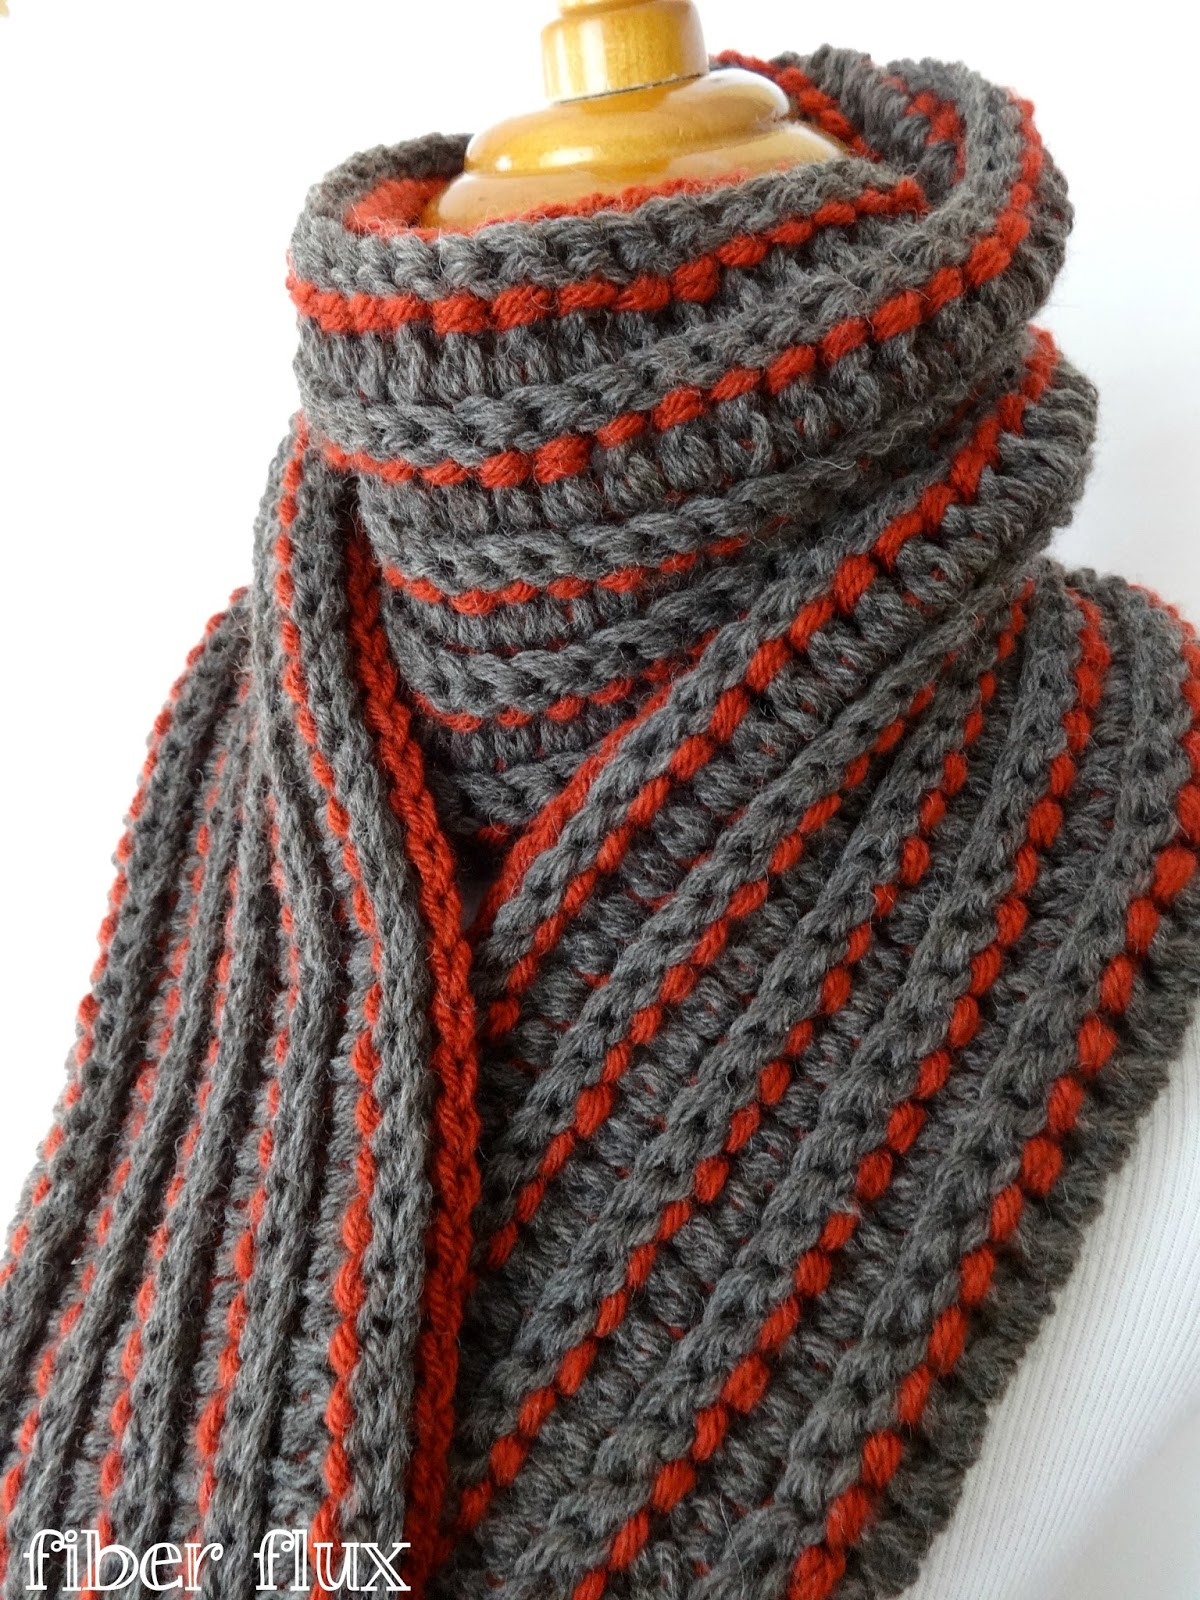 Free Crochet Scarf Patterns Awesome Fiber Flux Free Crochet Pattern the Every Man Scarf Of Charming 48 Images Free Crochet Scarf Patterns